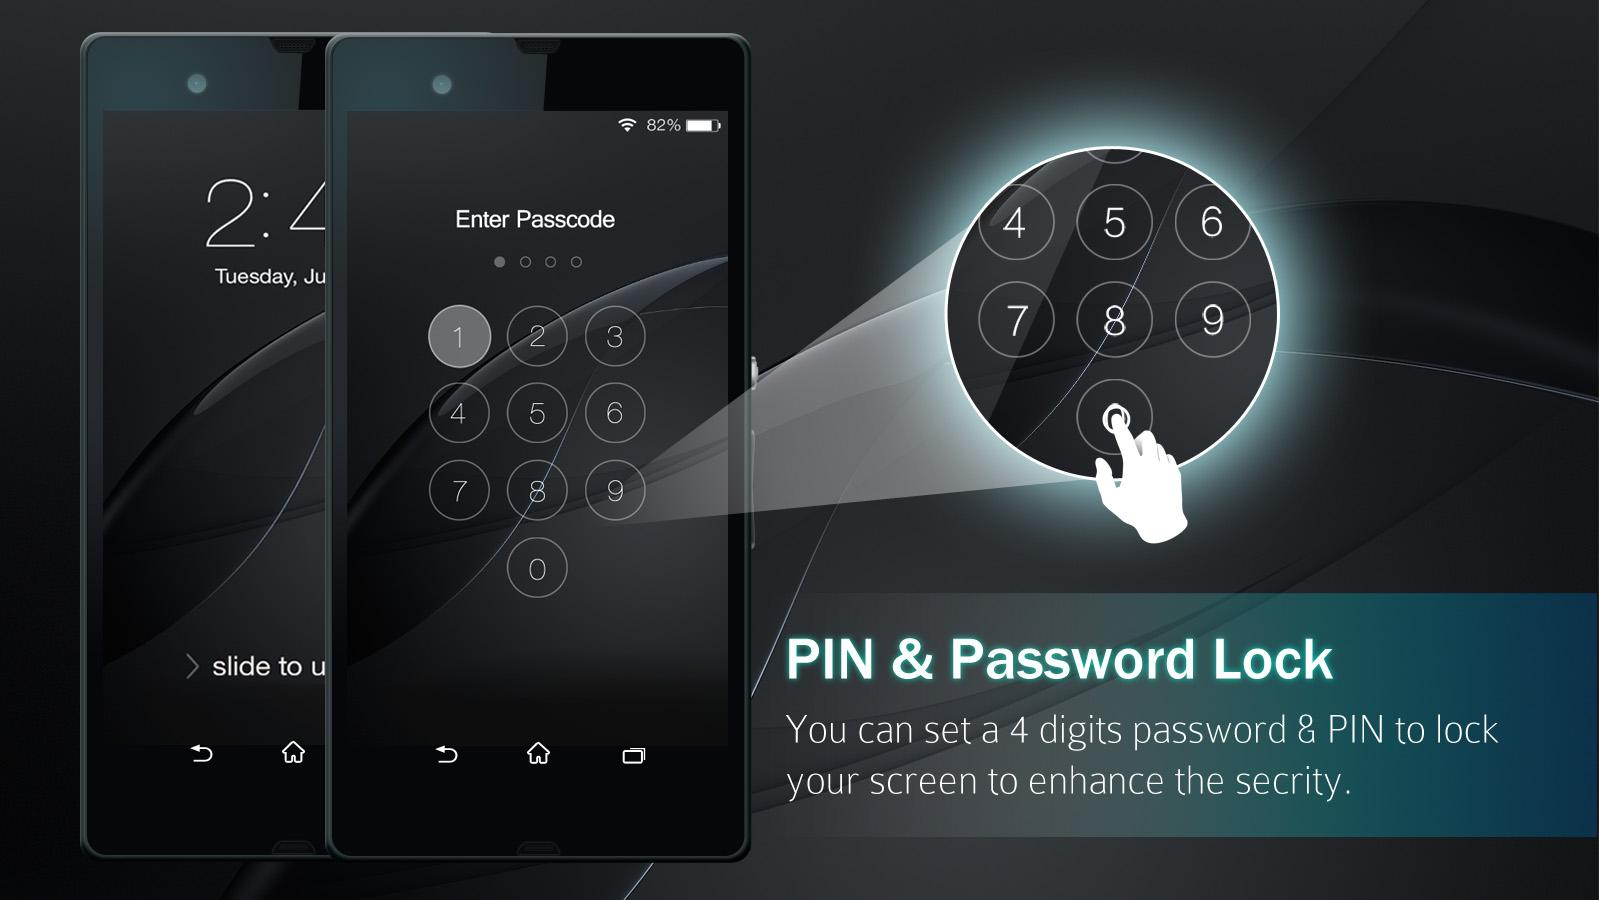 WoW Xperia Lock Screen for Android - Download | Cafe Bazaar